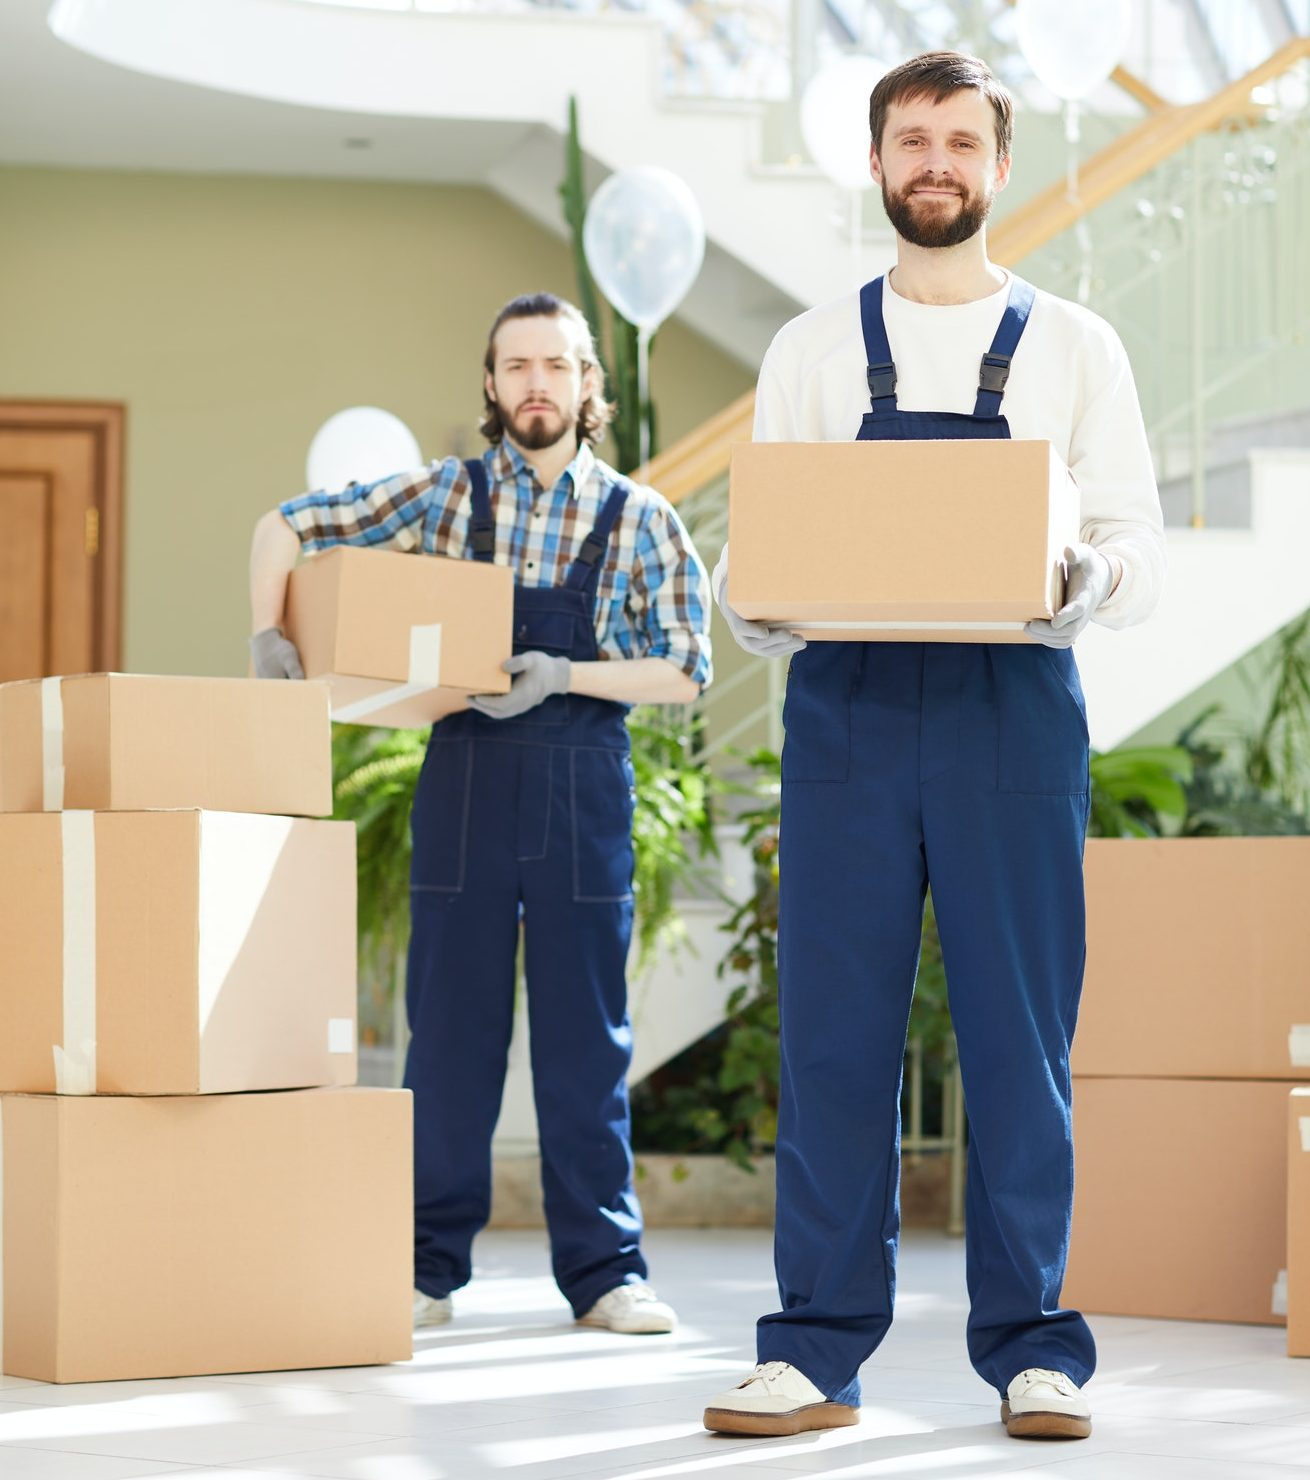 Professional workers helping with moving